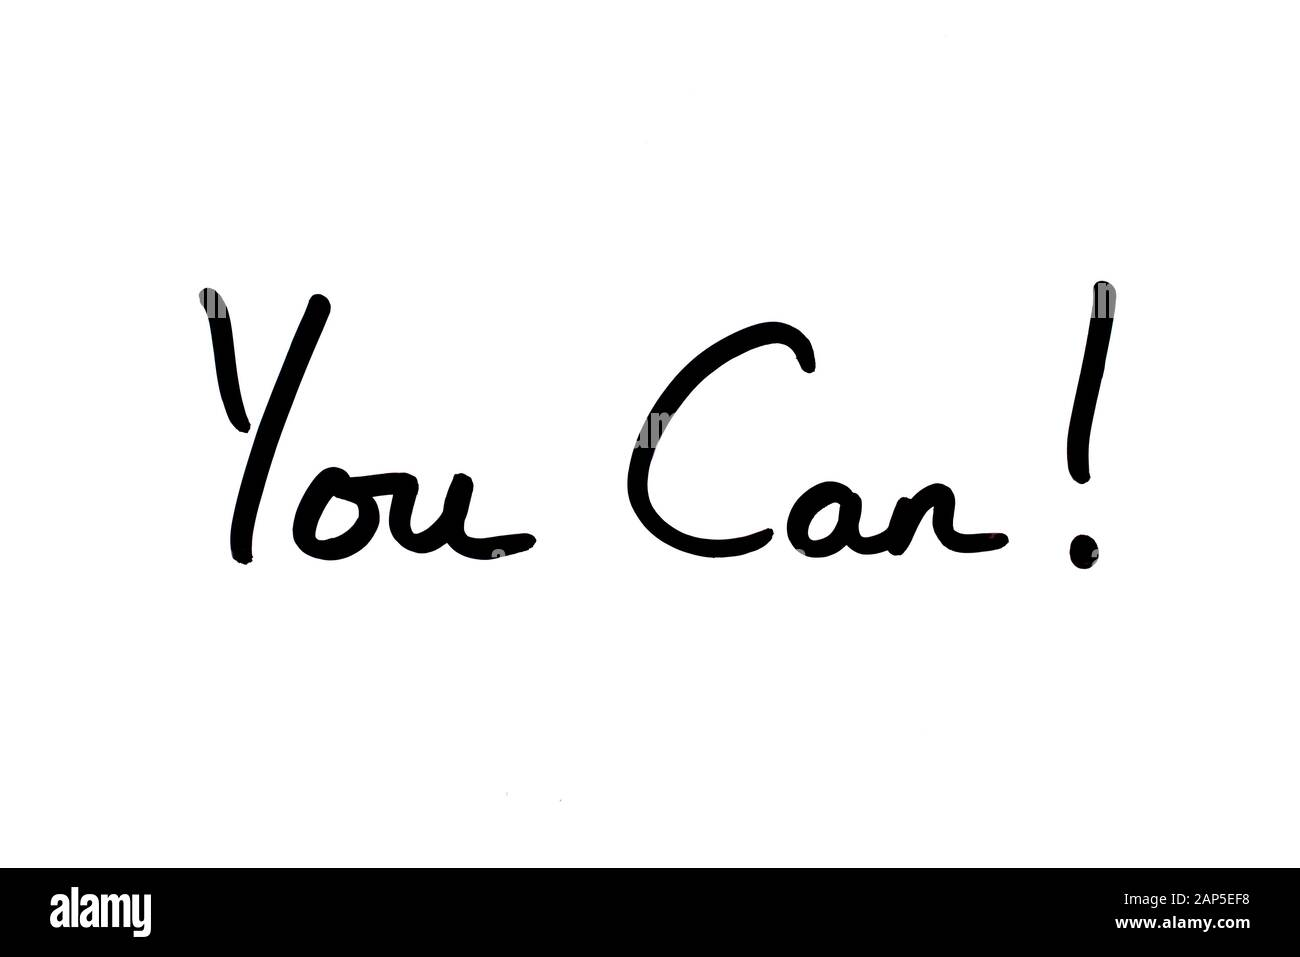 You Can! handwritten on a white background. Stock Photo